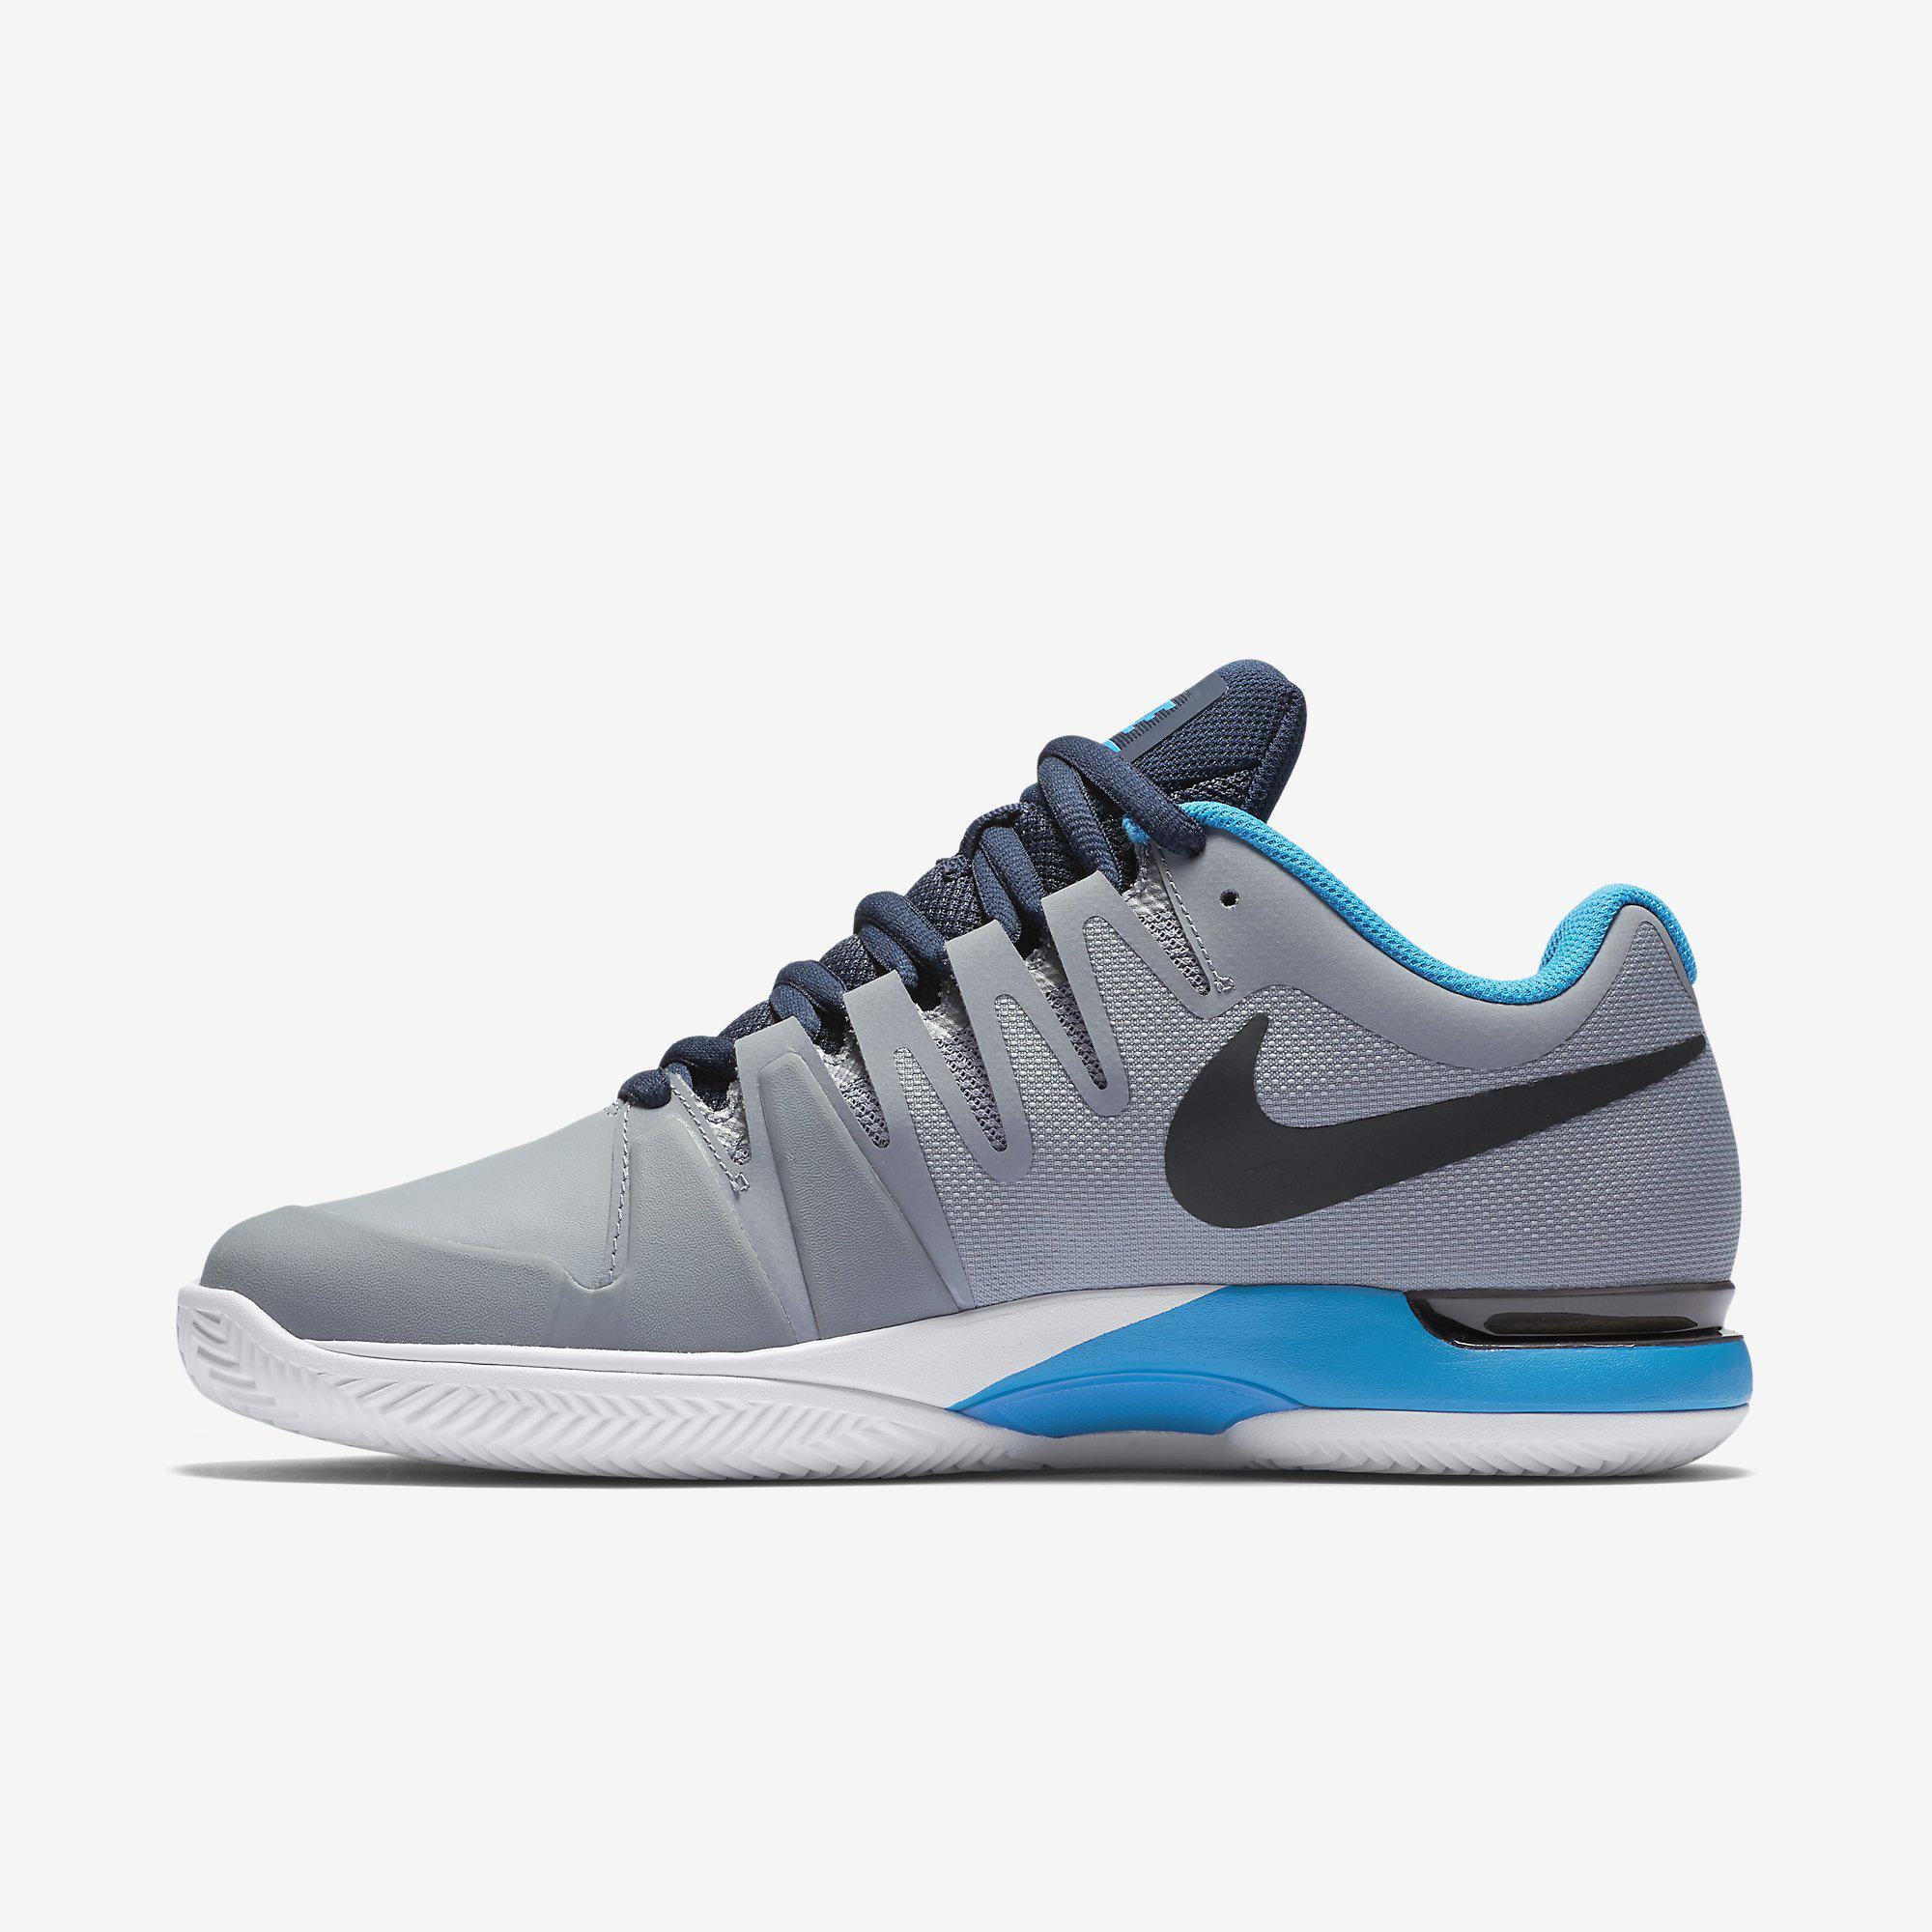 Spring Court Tennis Shoes Uk